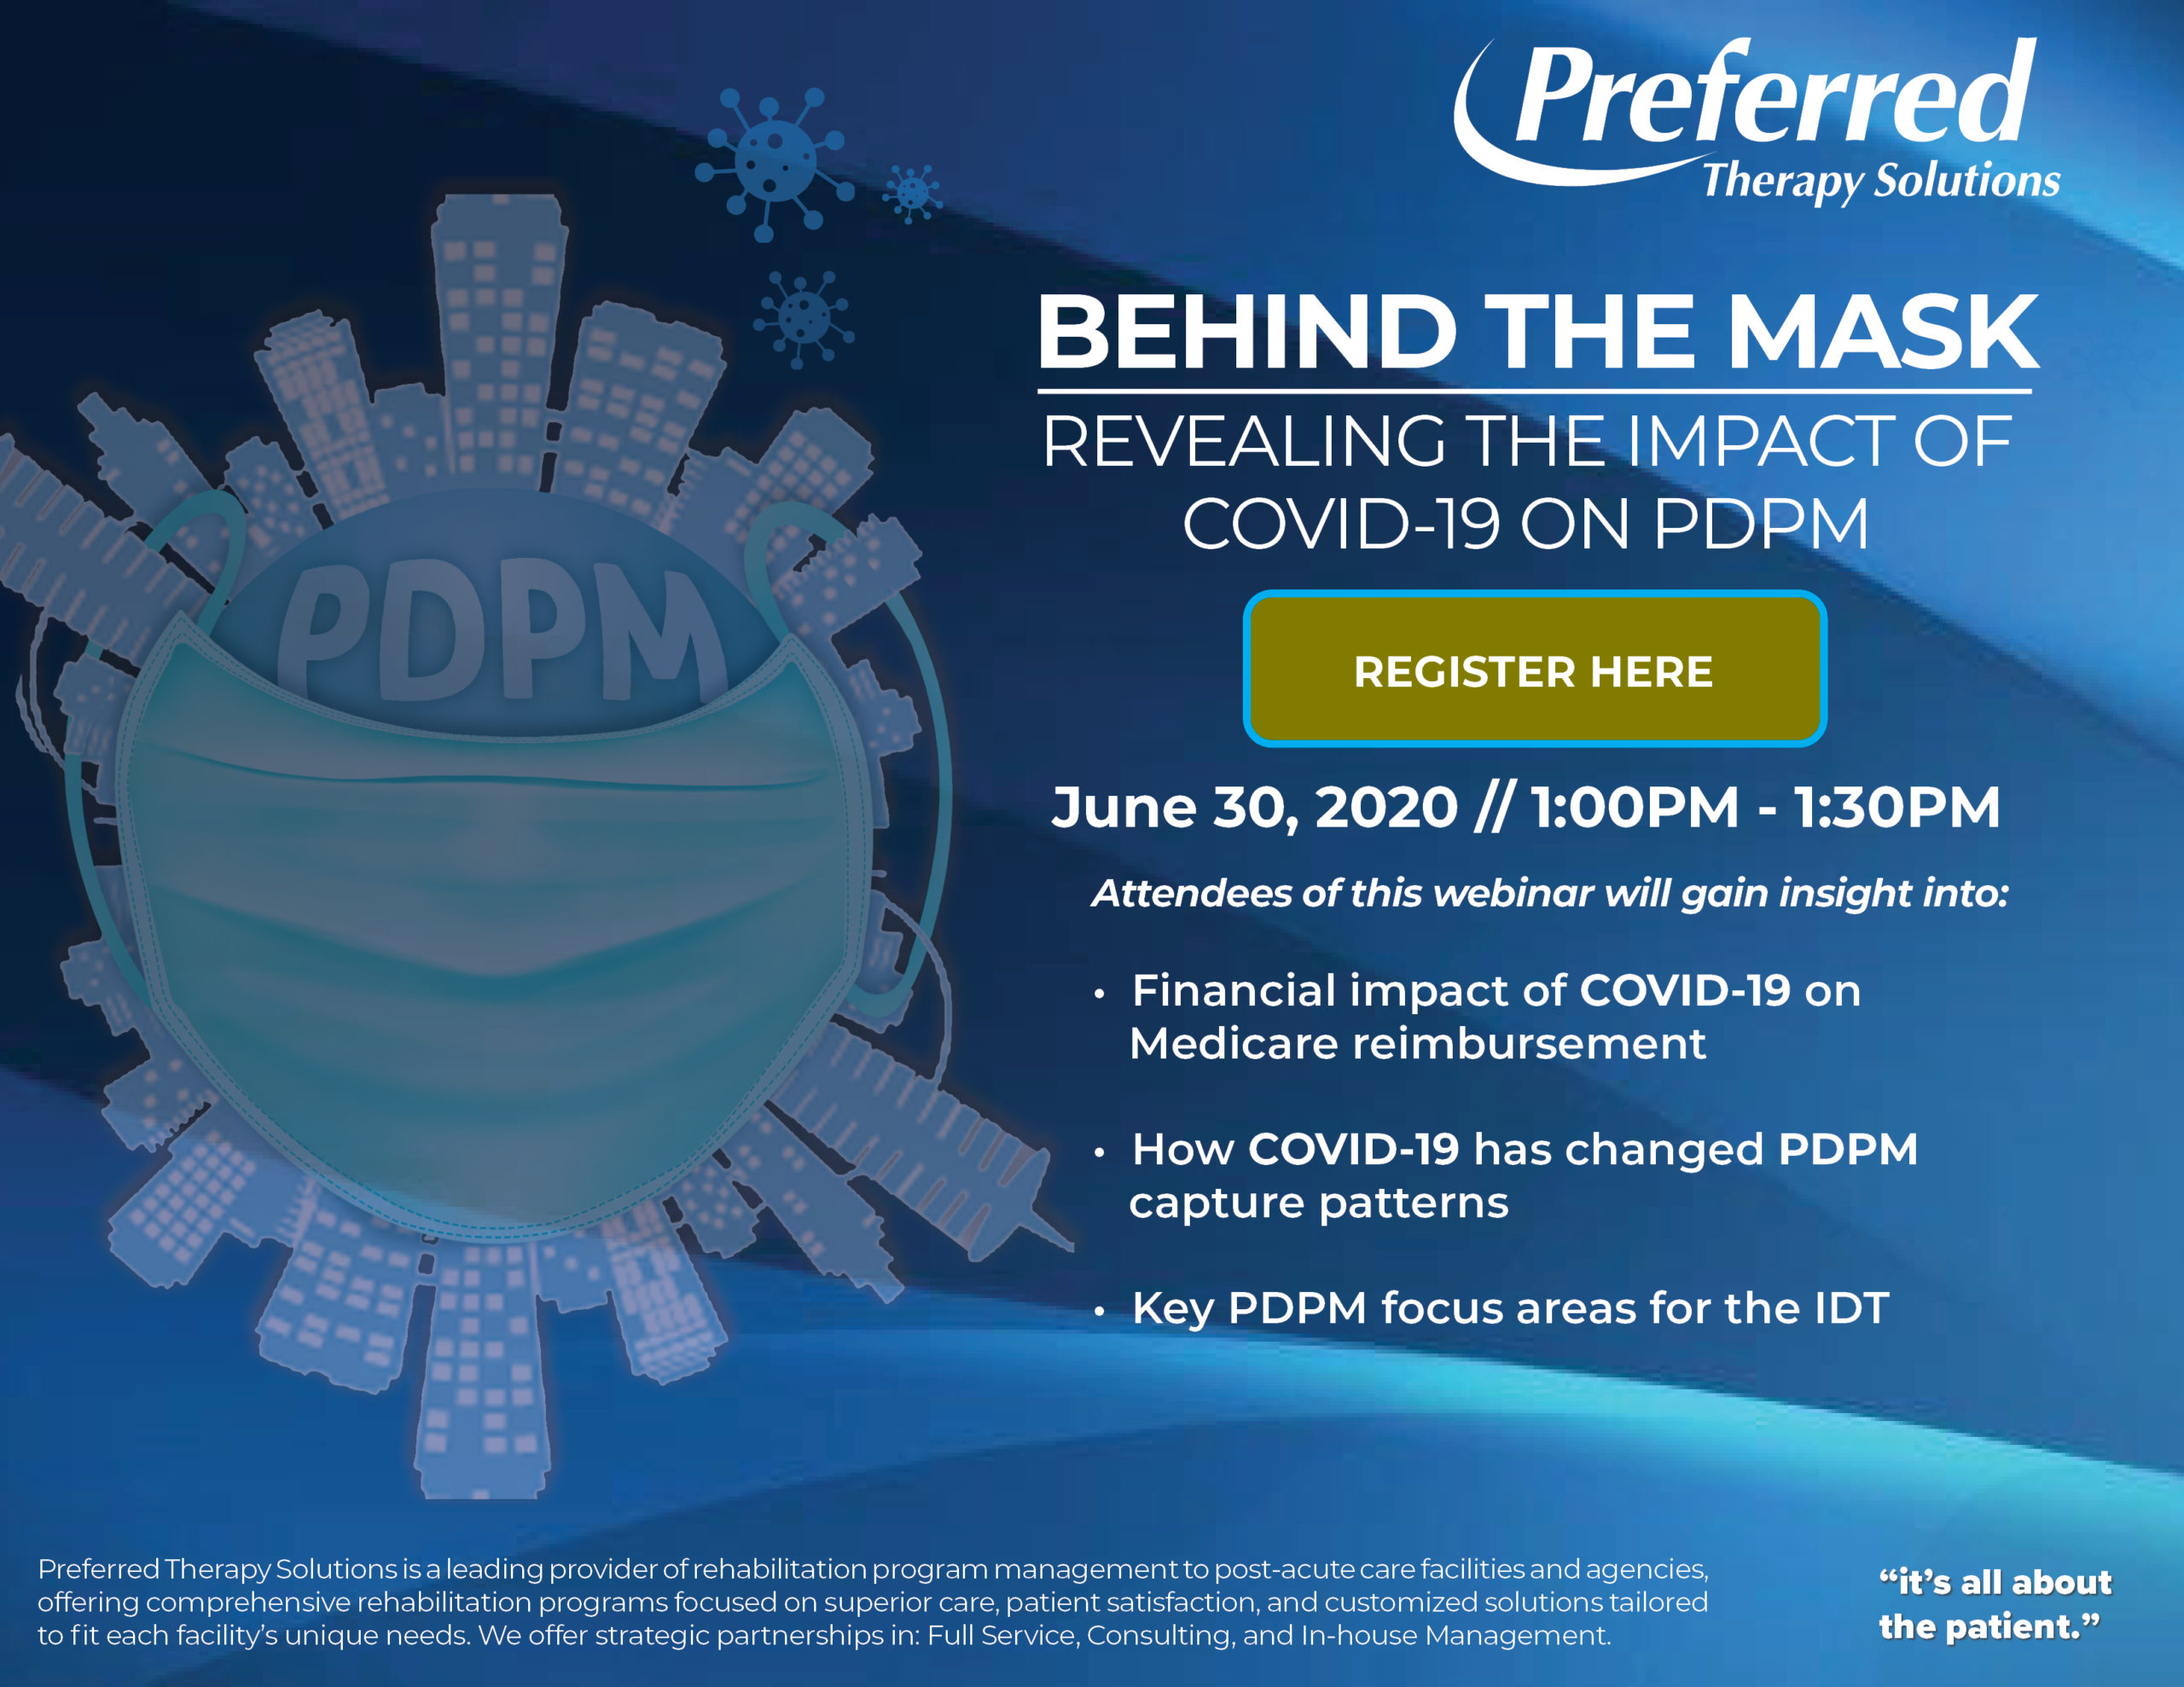 Preferred Therapy Solutions Webinar on Revealing the Impact of COVID-19 on PDPM